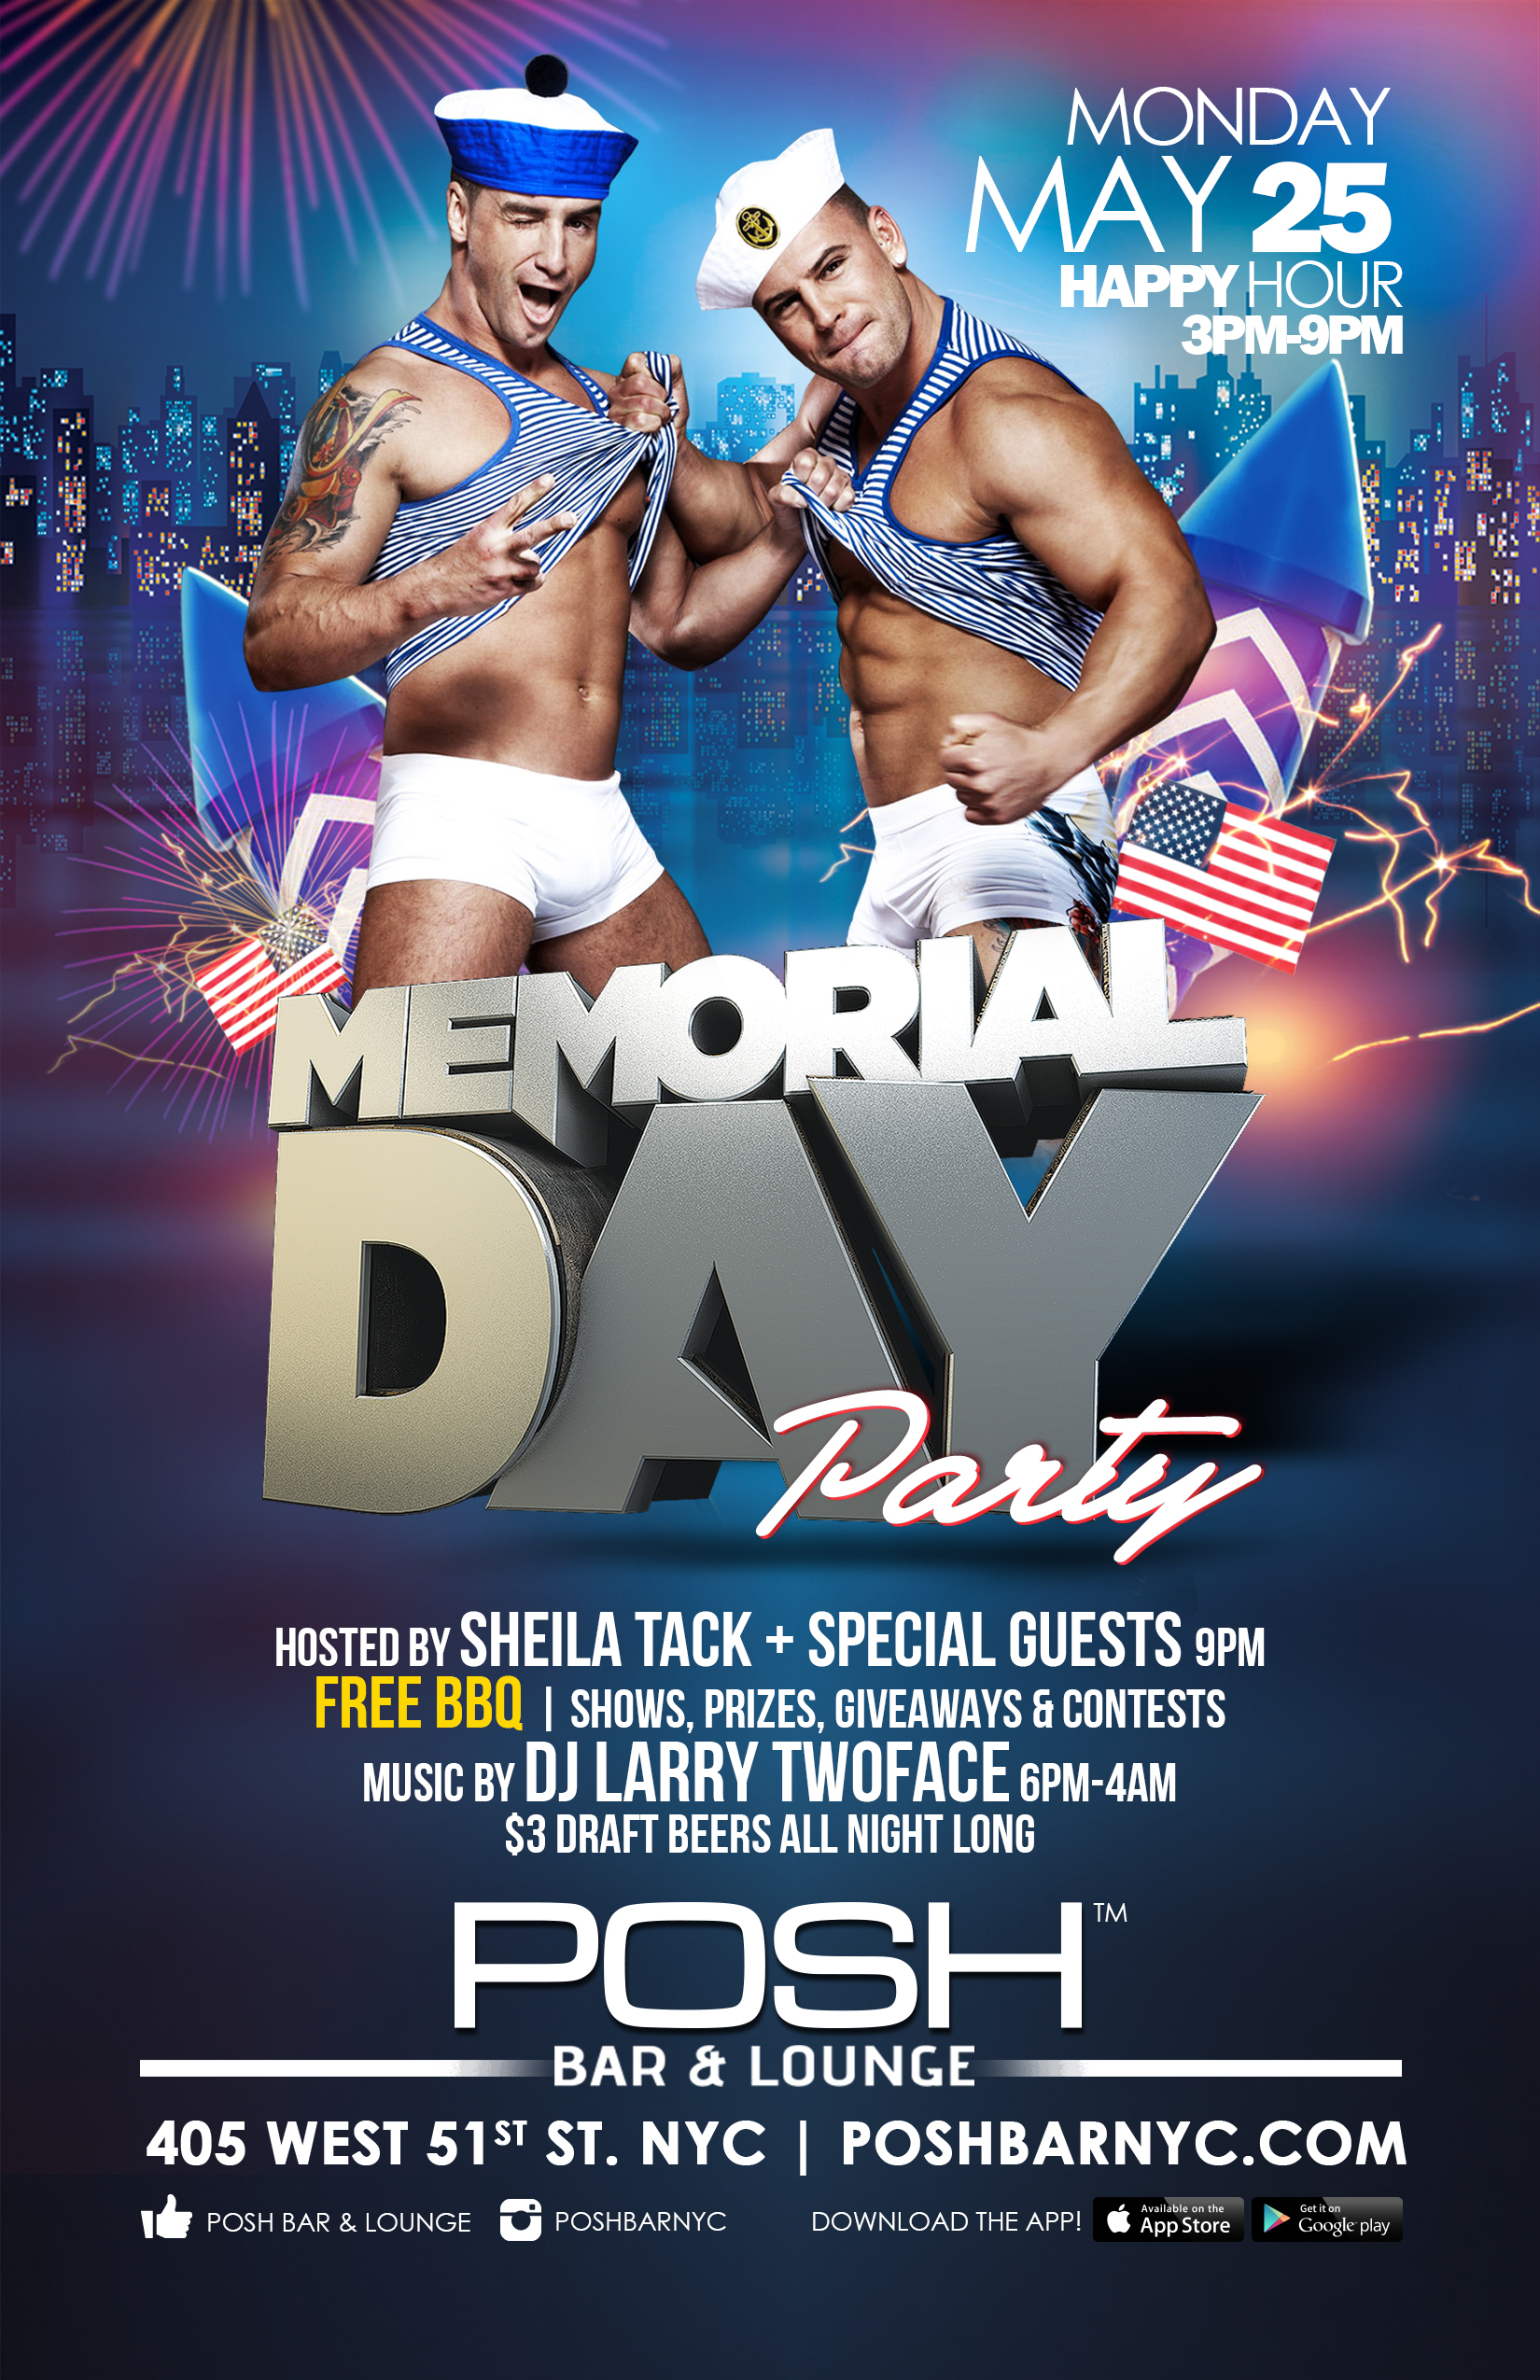 Memorial Day Party + BBQ | Posh Bar & Lounge - The Original Gay ...